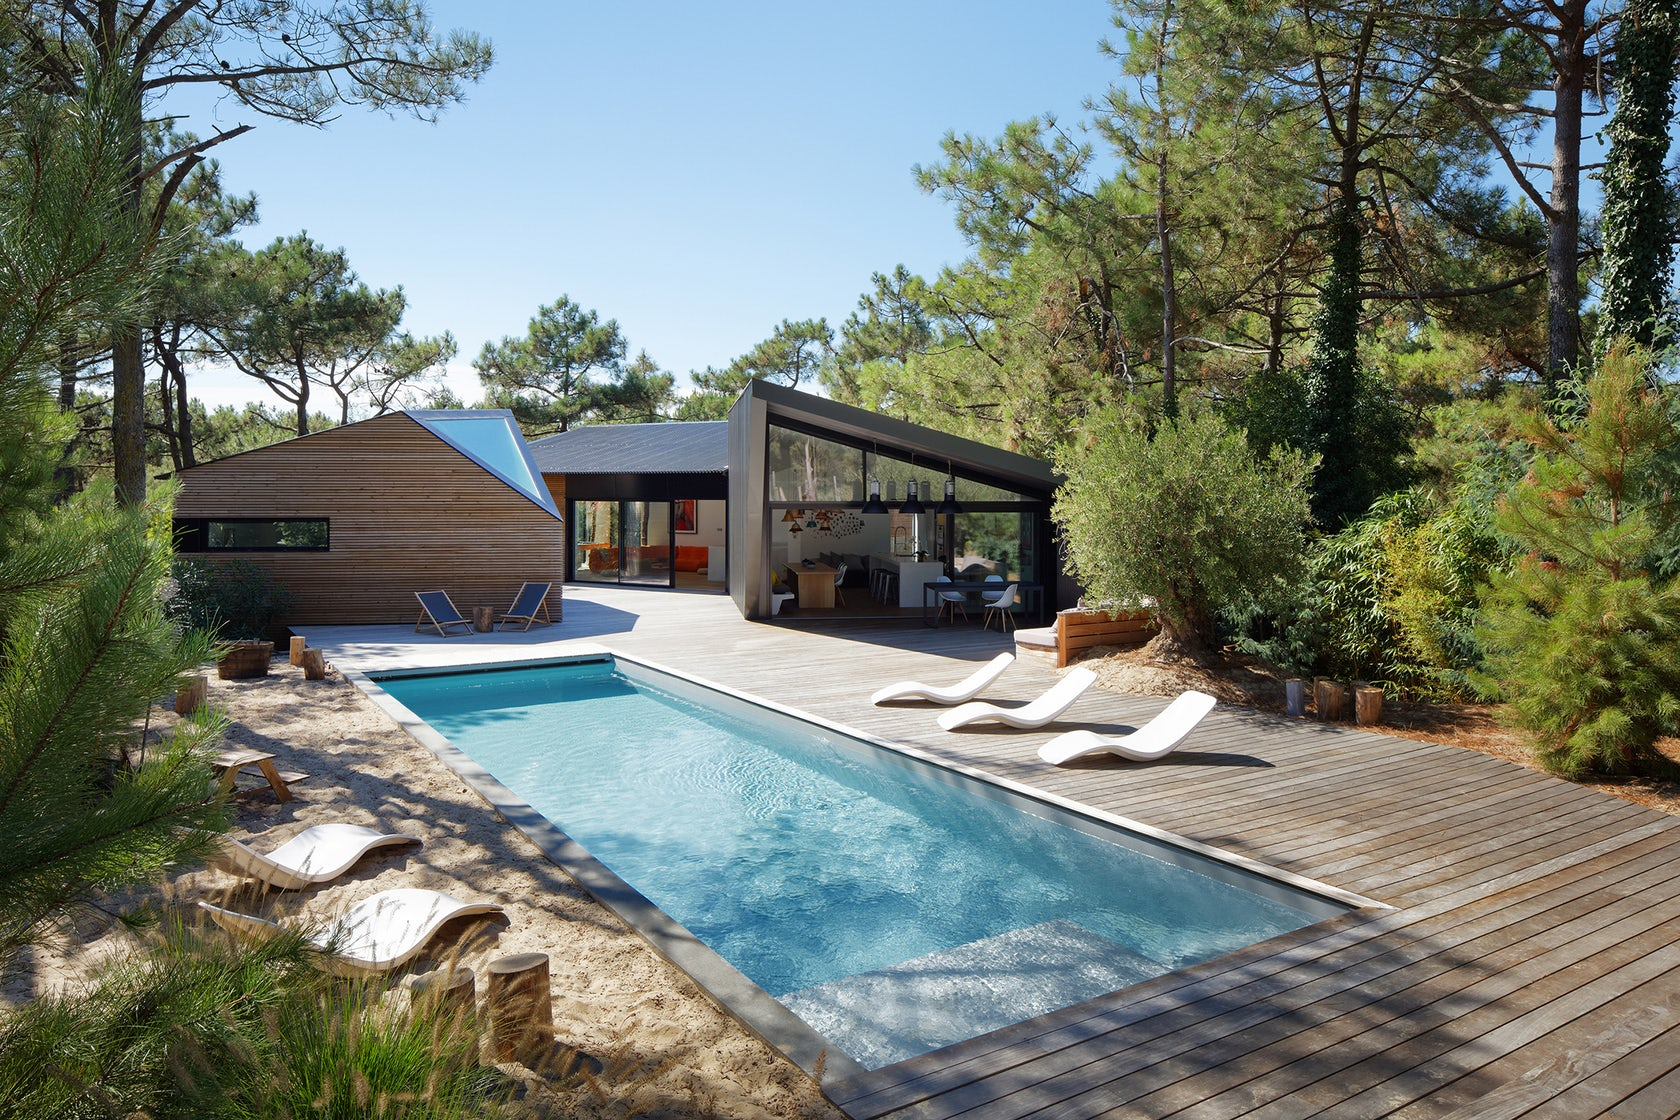 Holiday House With Swimming Pool In Cap Ferret France Architizer